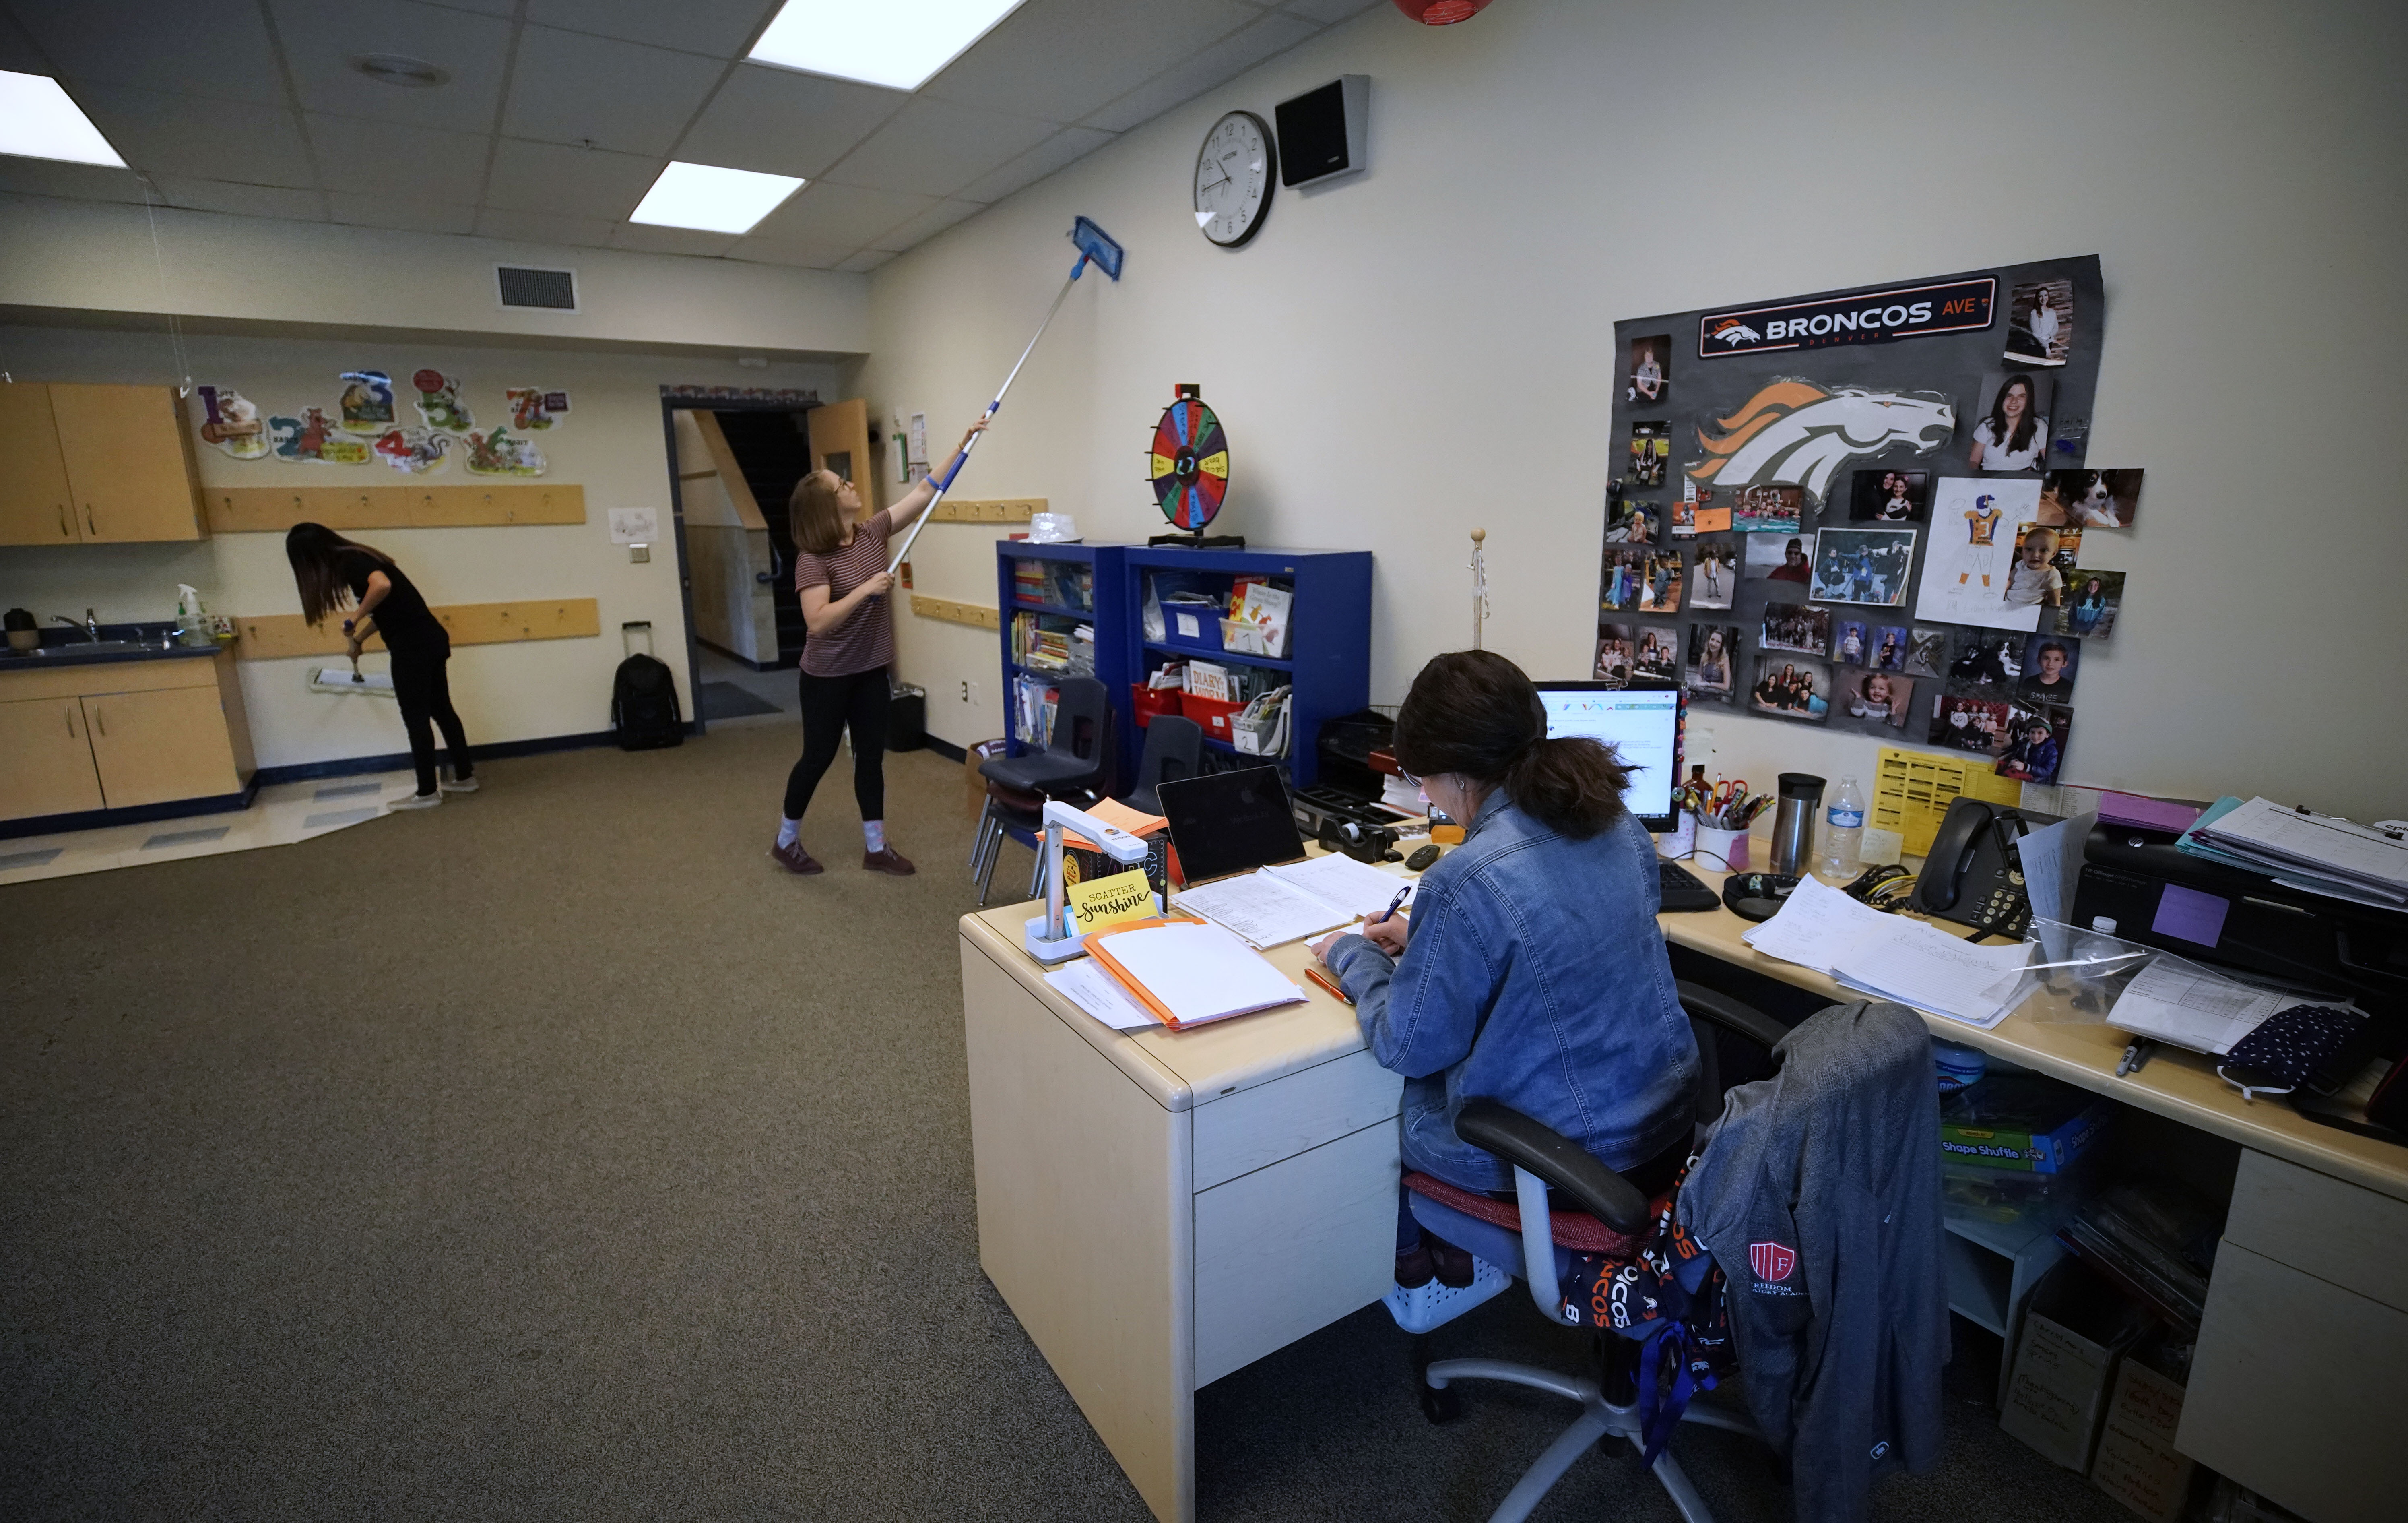 PROVO, UT - MAY 18: As a teacher figures out the final grades for her students workers clean the walls in a classroom at Freedom Preparatory Academy on May 18, 2020 in Provo, Utah. Freedom Academy an elementary school was closed on March 16, 2020 along with all other school in Utah due to the order of the Utah Governor due to the COVID-19 pandemic. (Photo by George Frey/Getty Images)